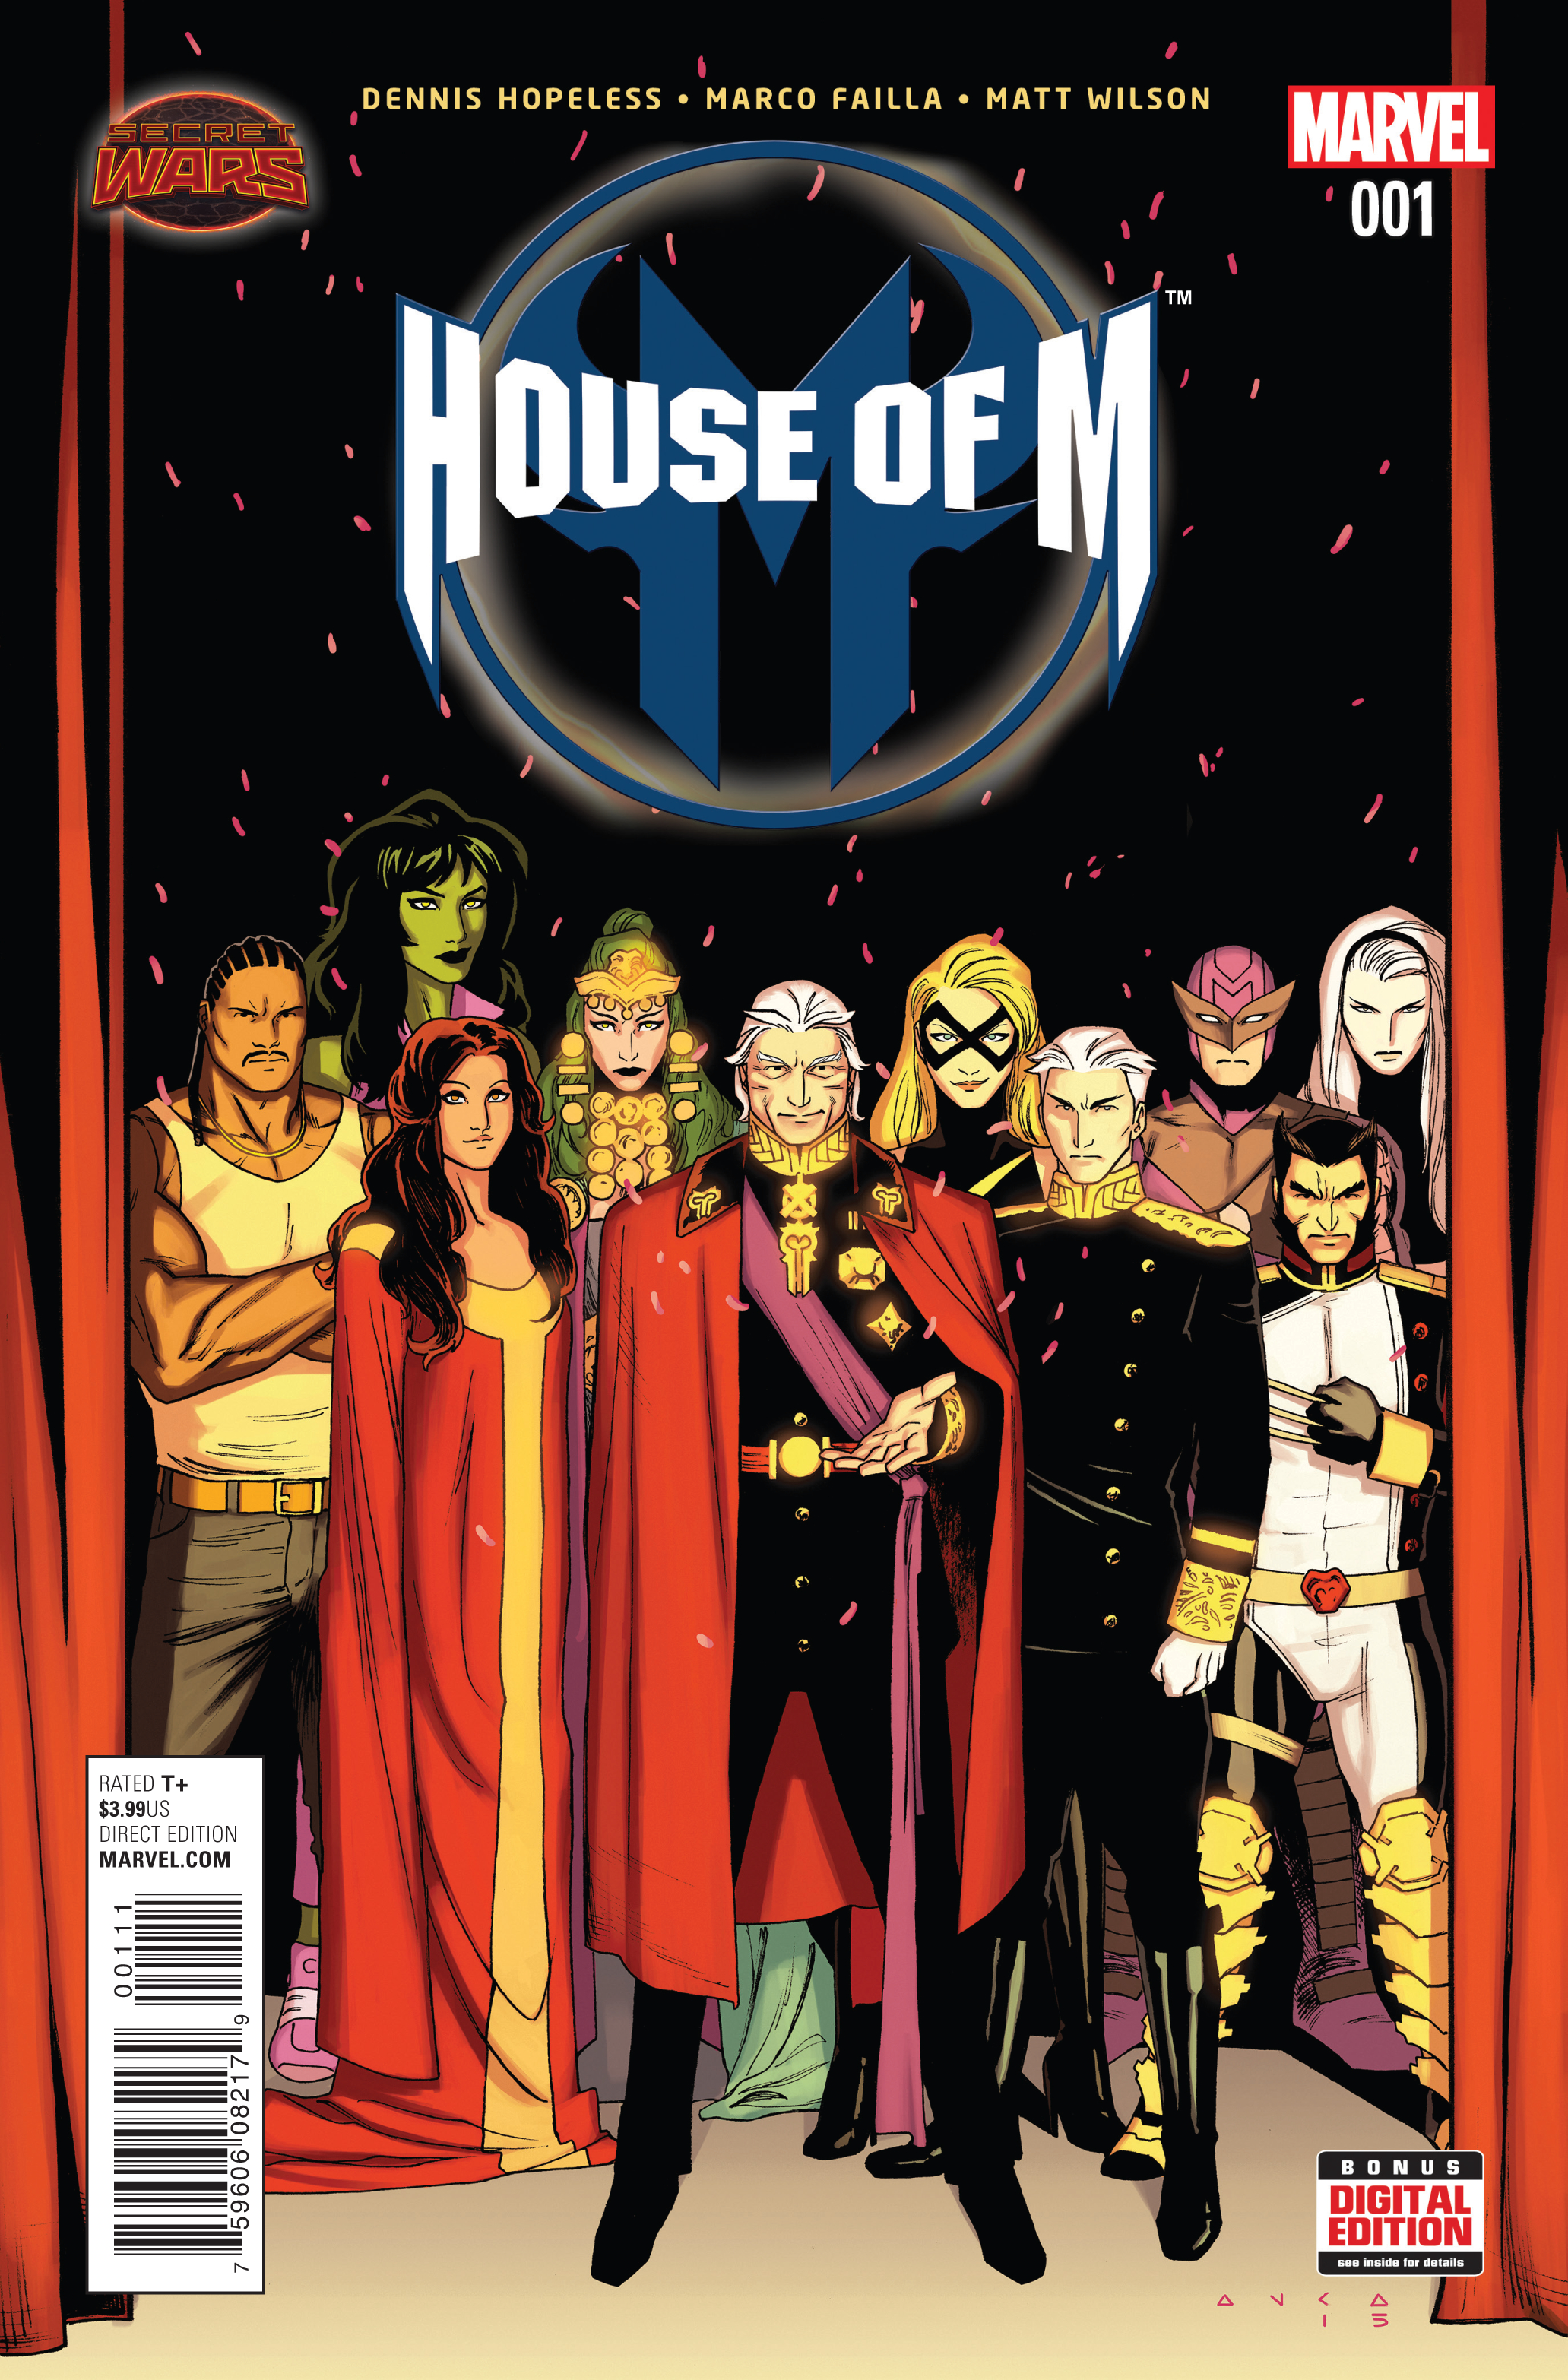 HOUSE OF M #1 SWA